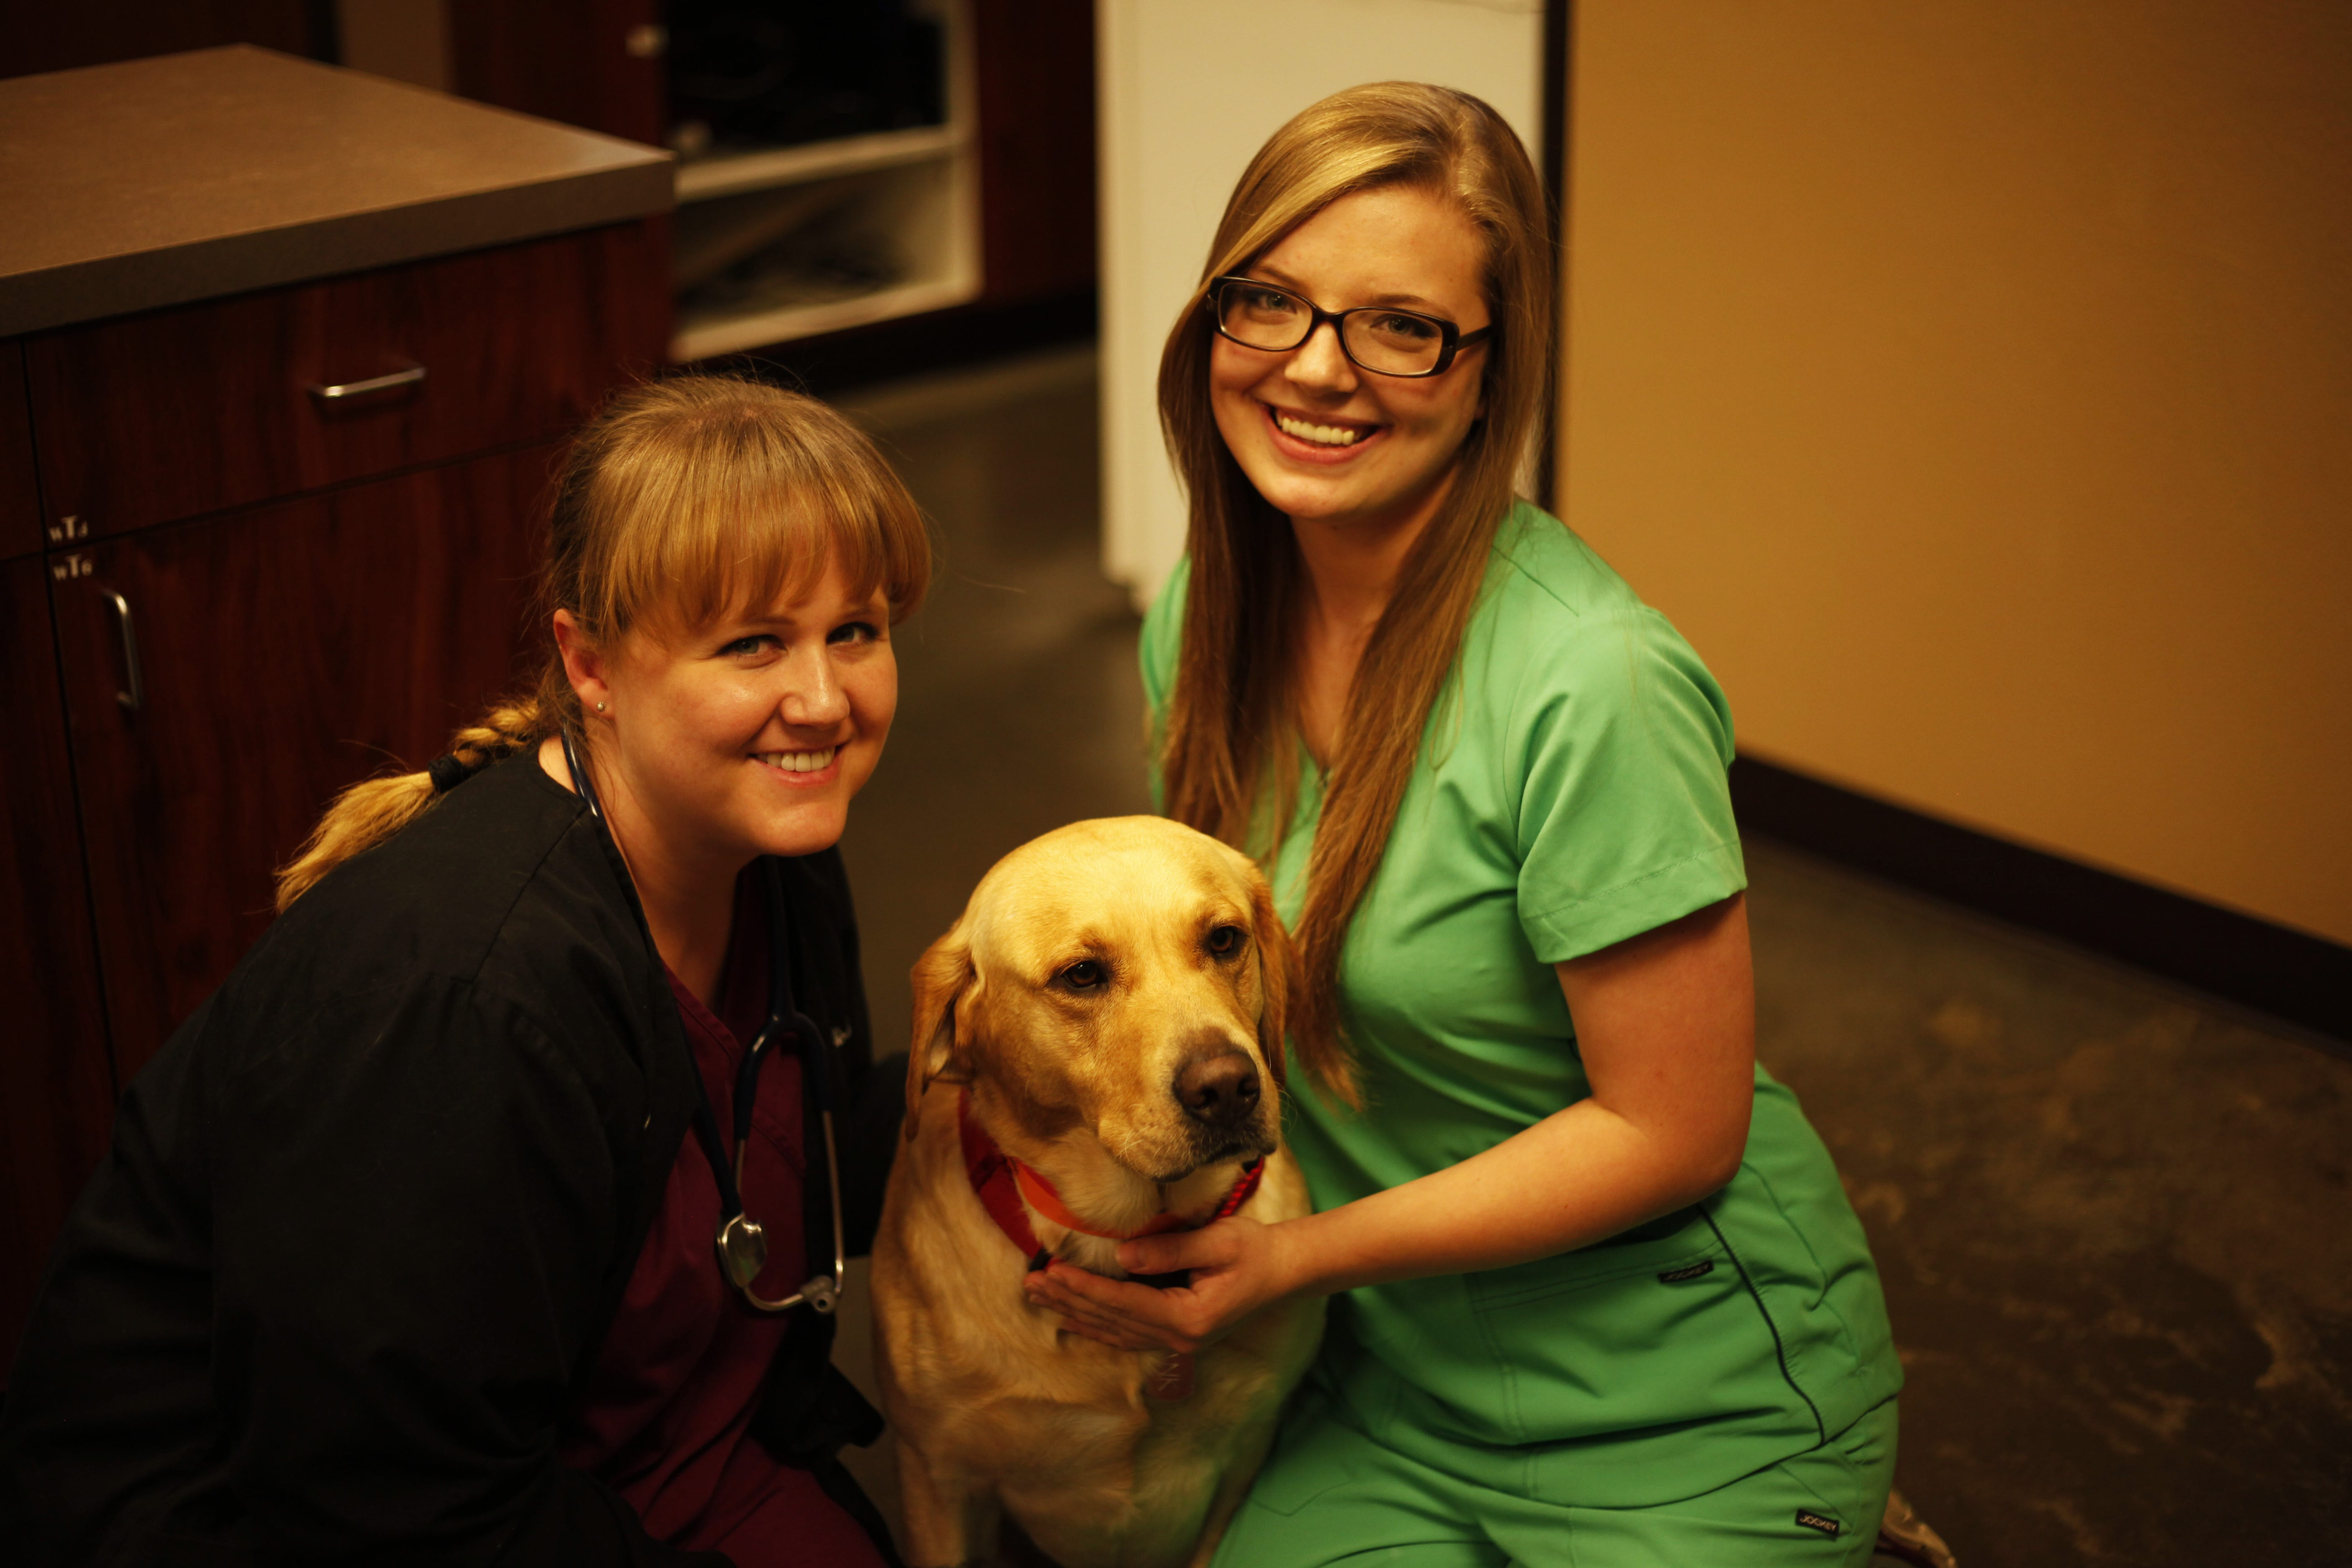 Dr. Dodson and Kenzie